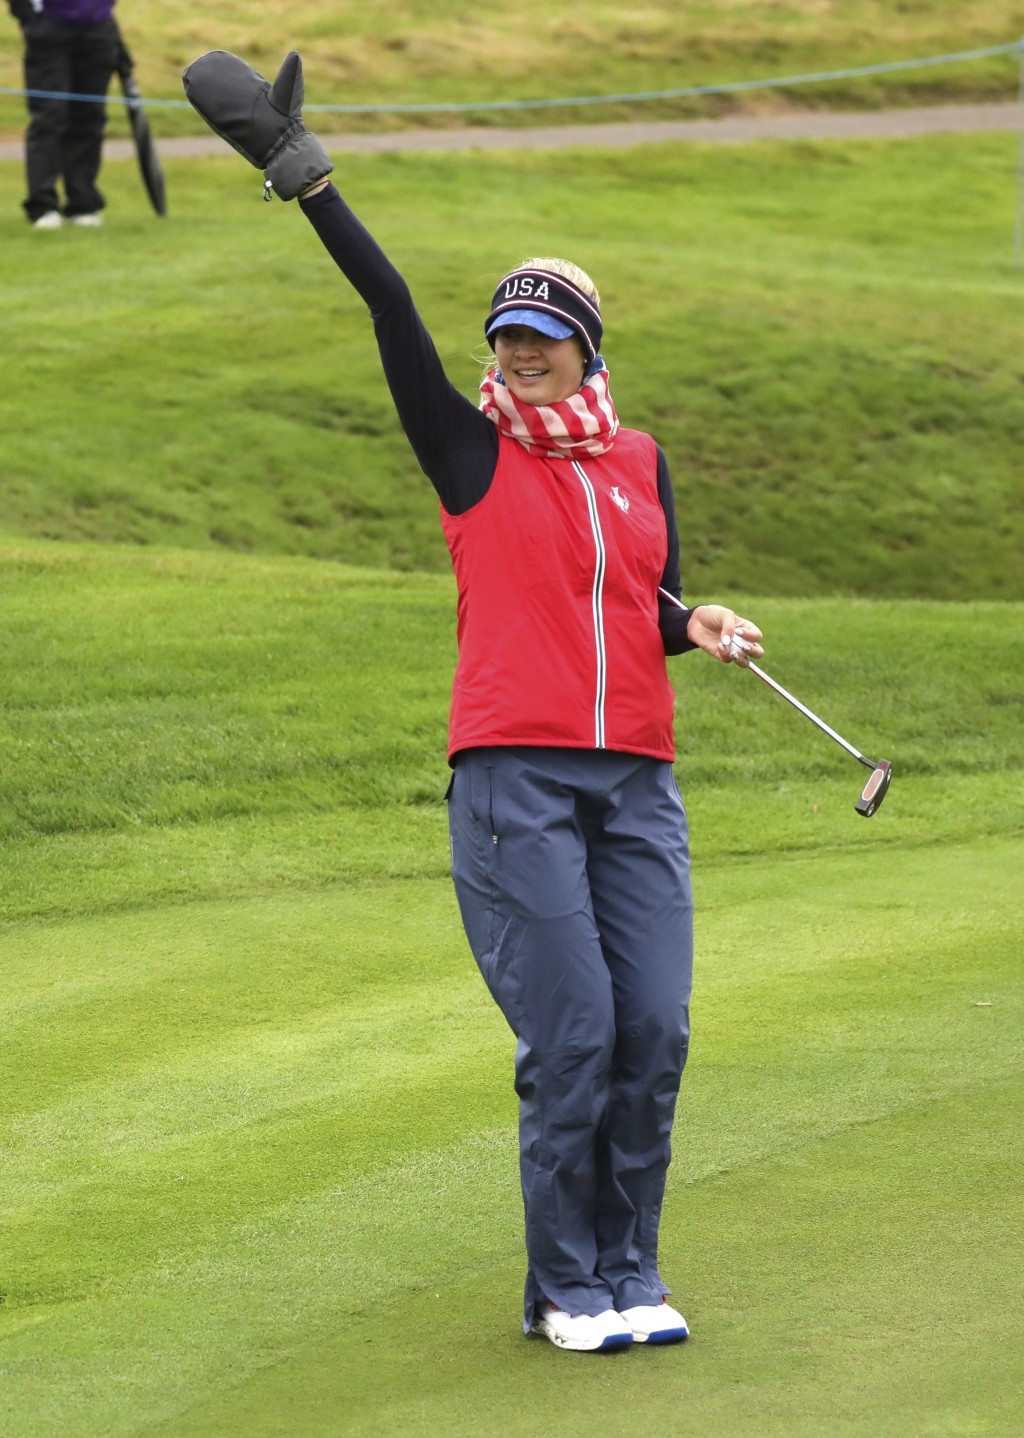 Jessica Korda of the US after holing a putt on the 3rd green during a practice round for the Solheim cup at Gleneagles, Auchterarder, Scotland, Thursd